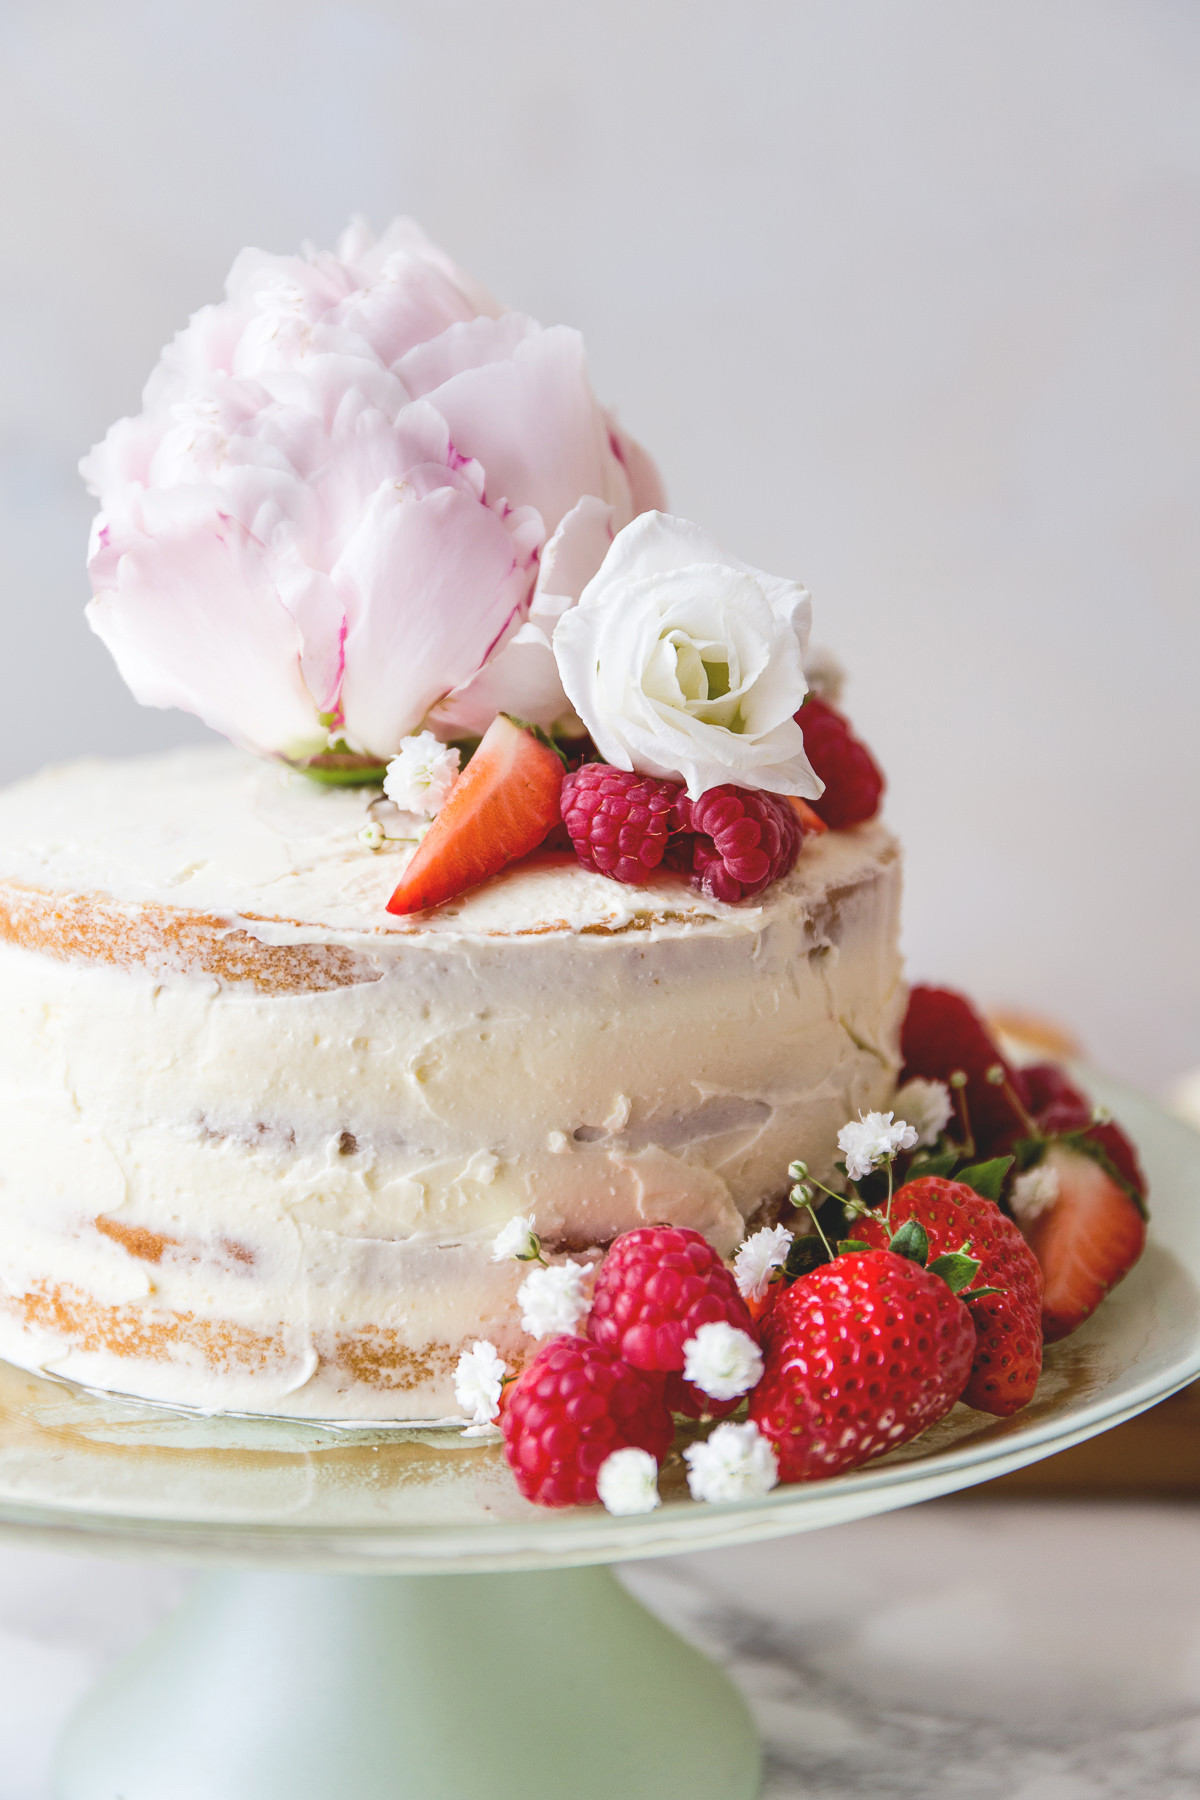 Royal Wedding Cake Recipe  The Perfect Menu for A Modern Tea Party to Watch the Royal